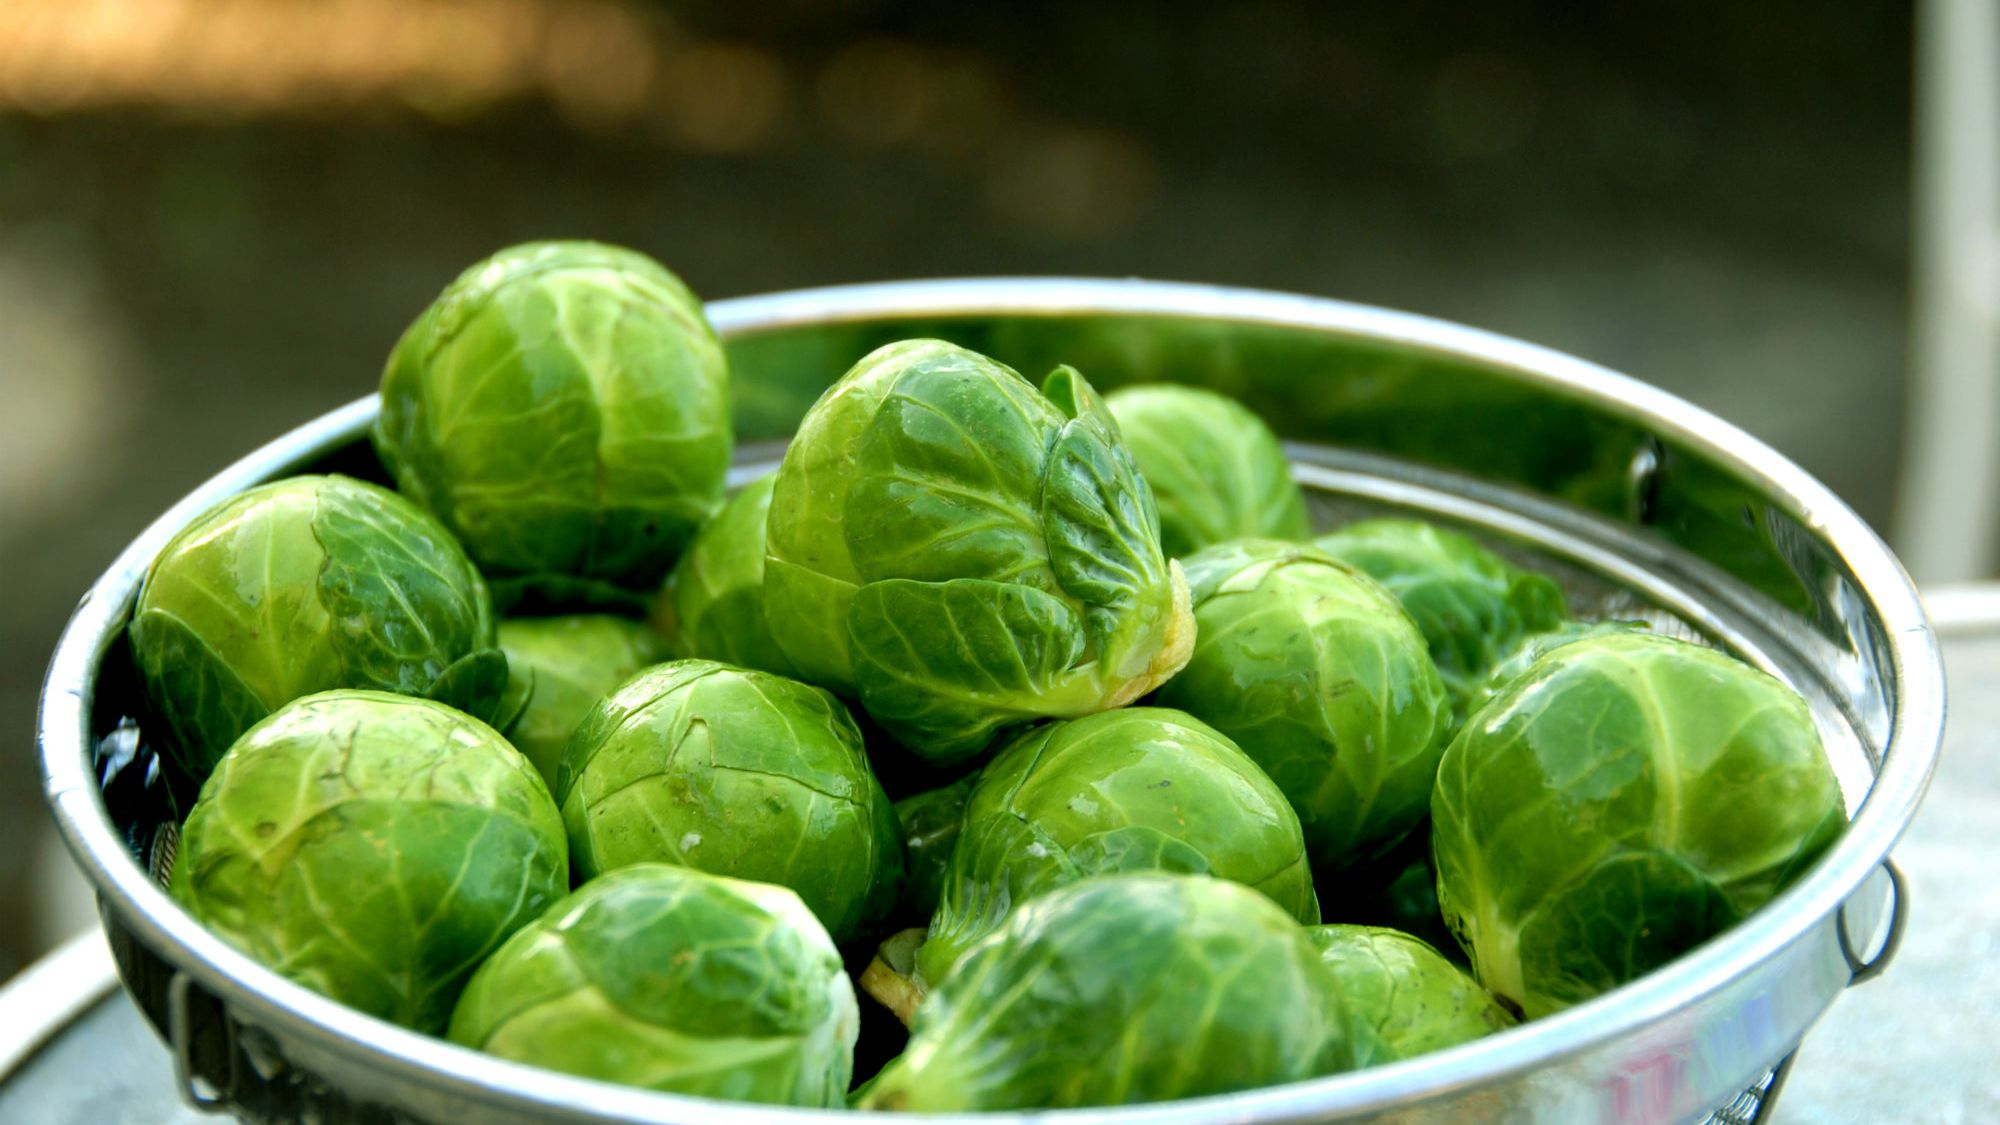 Image result for Brussel sprouts""